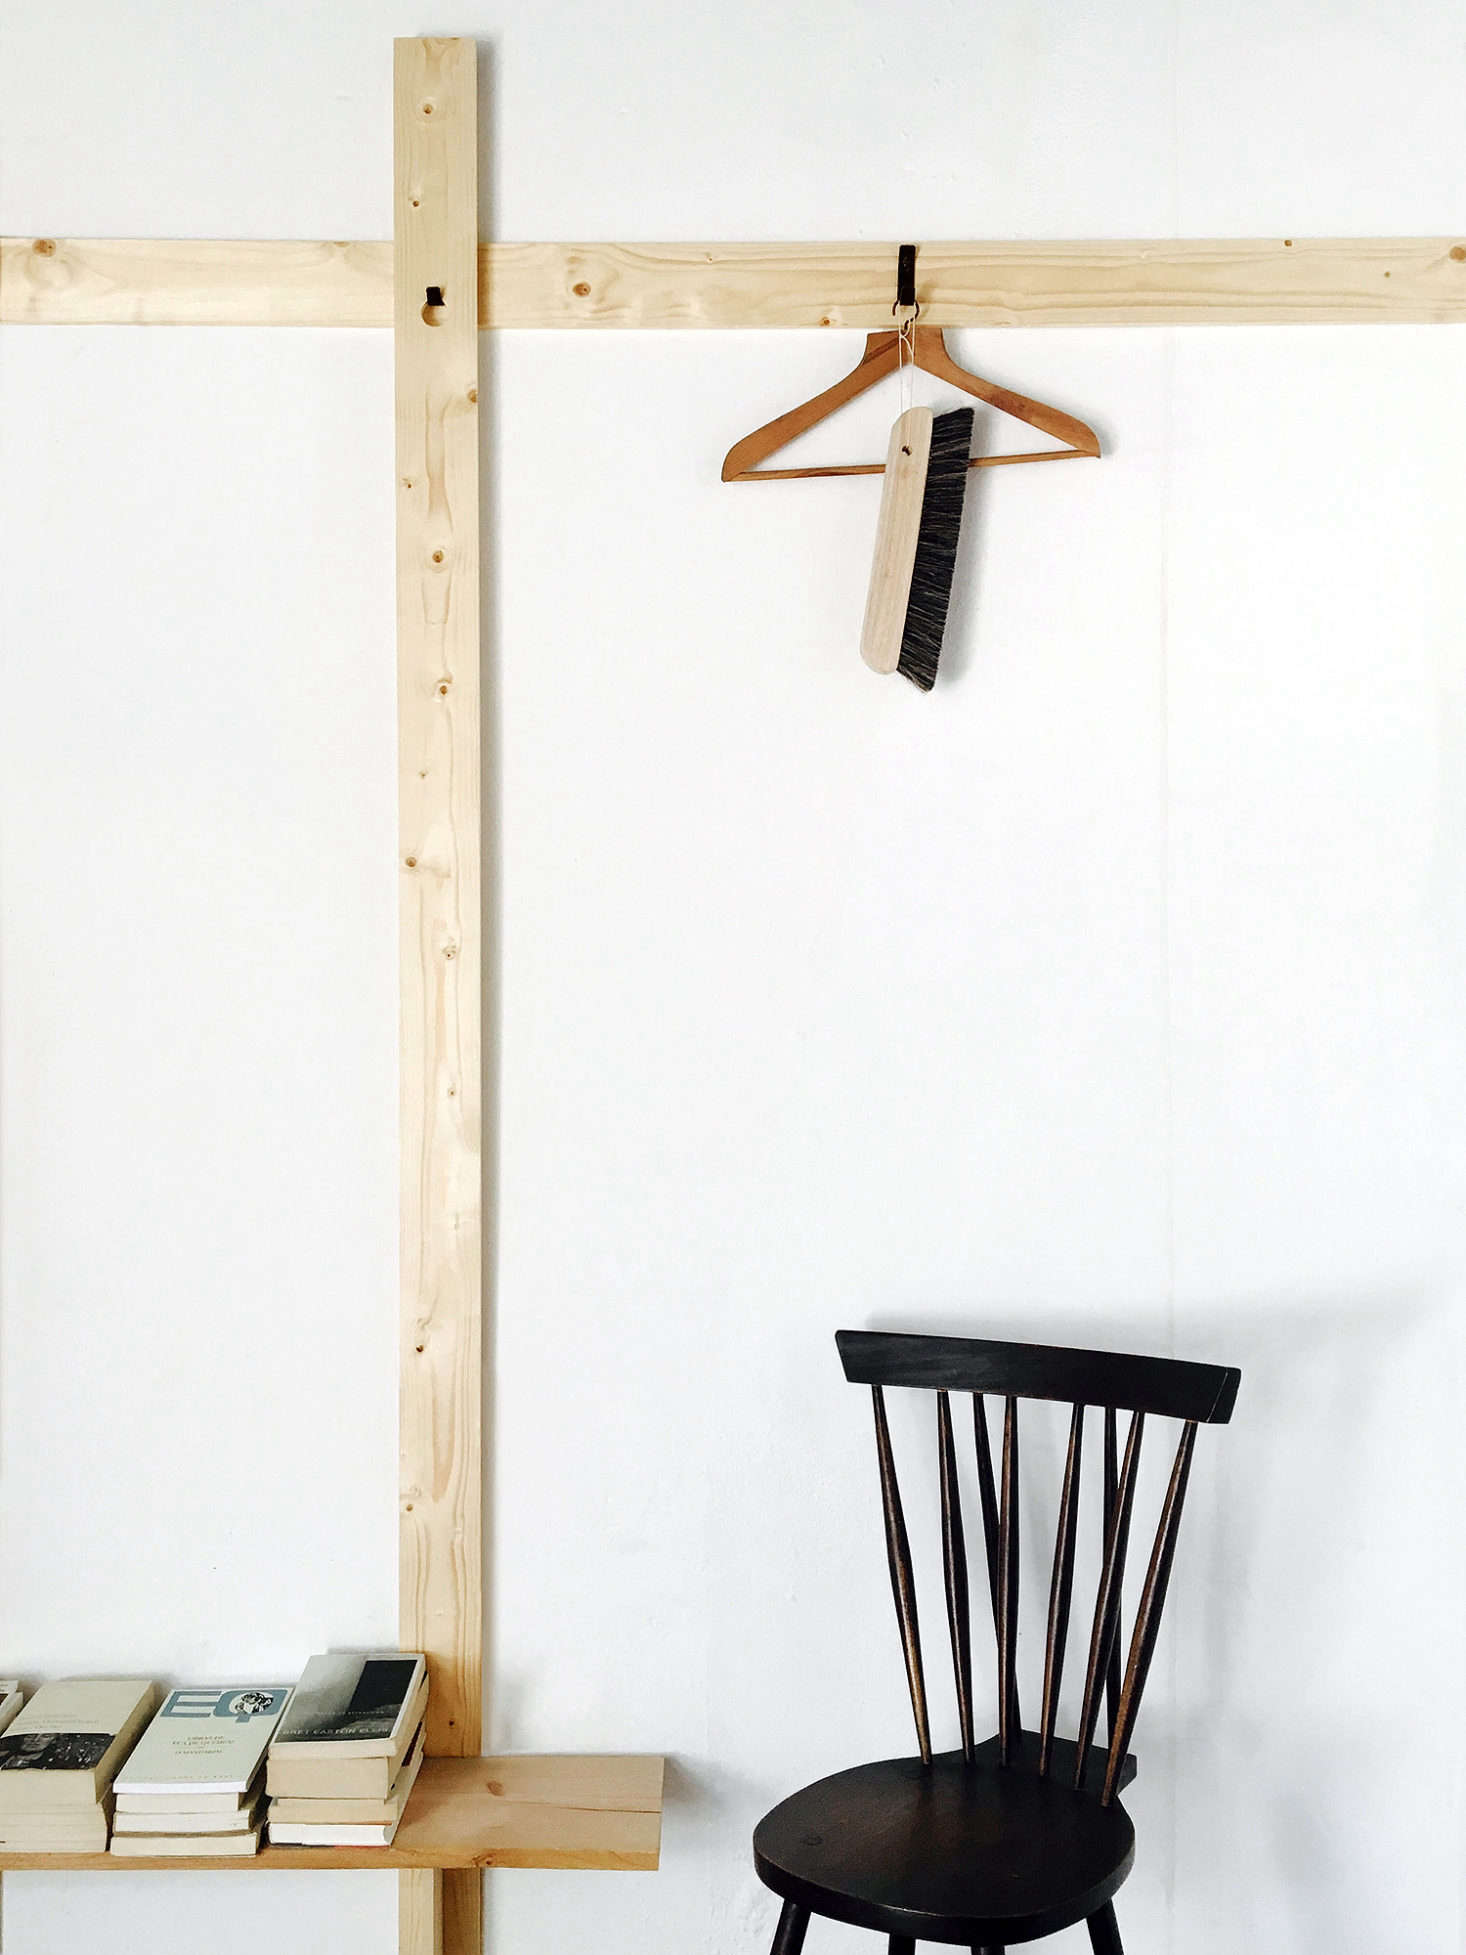 Removable black hooks turn the simple lengths of wood into storage.